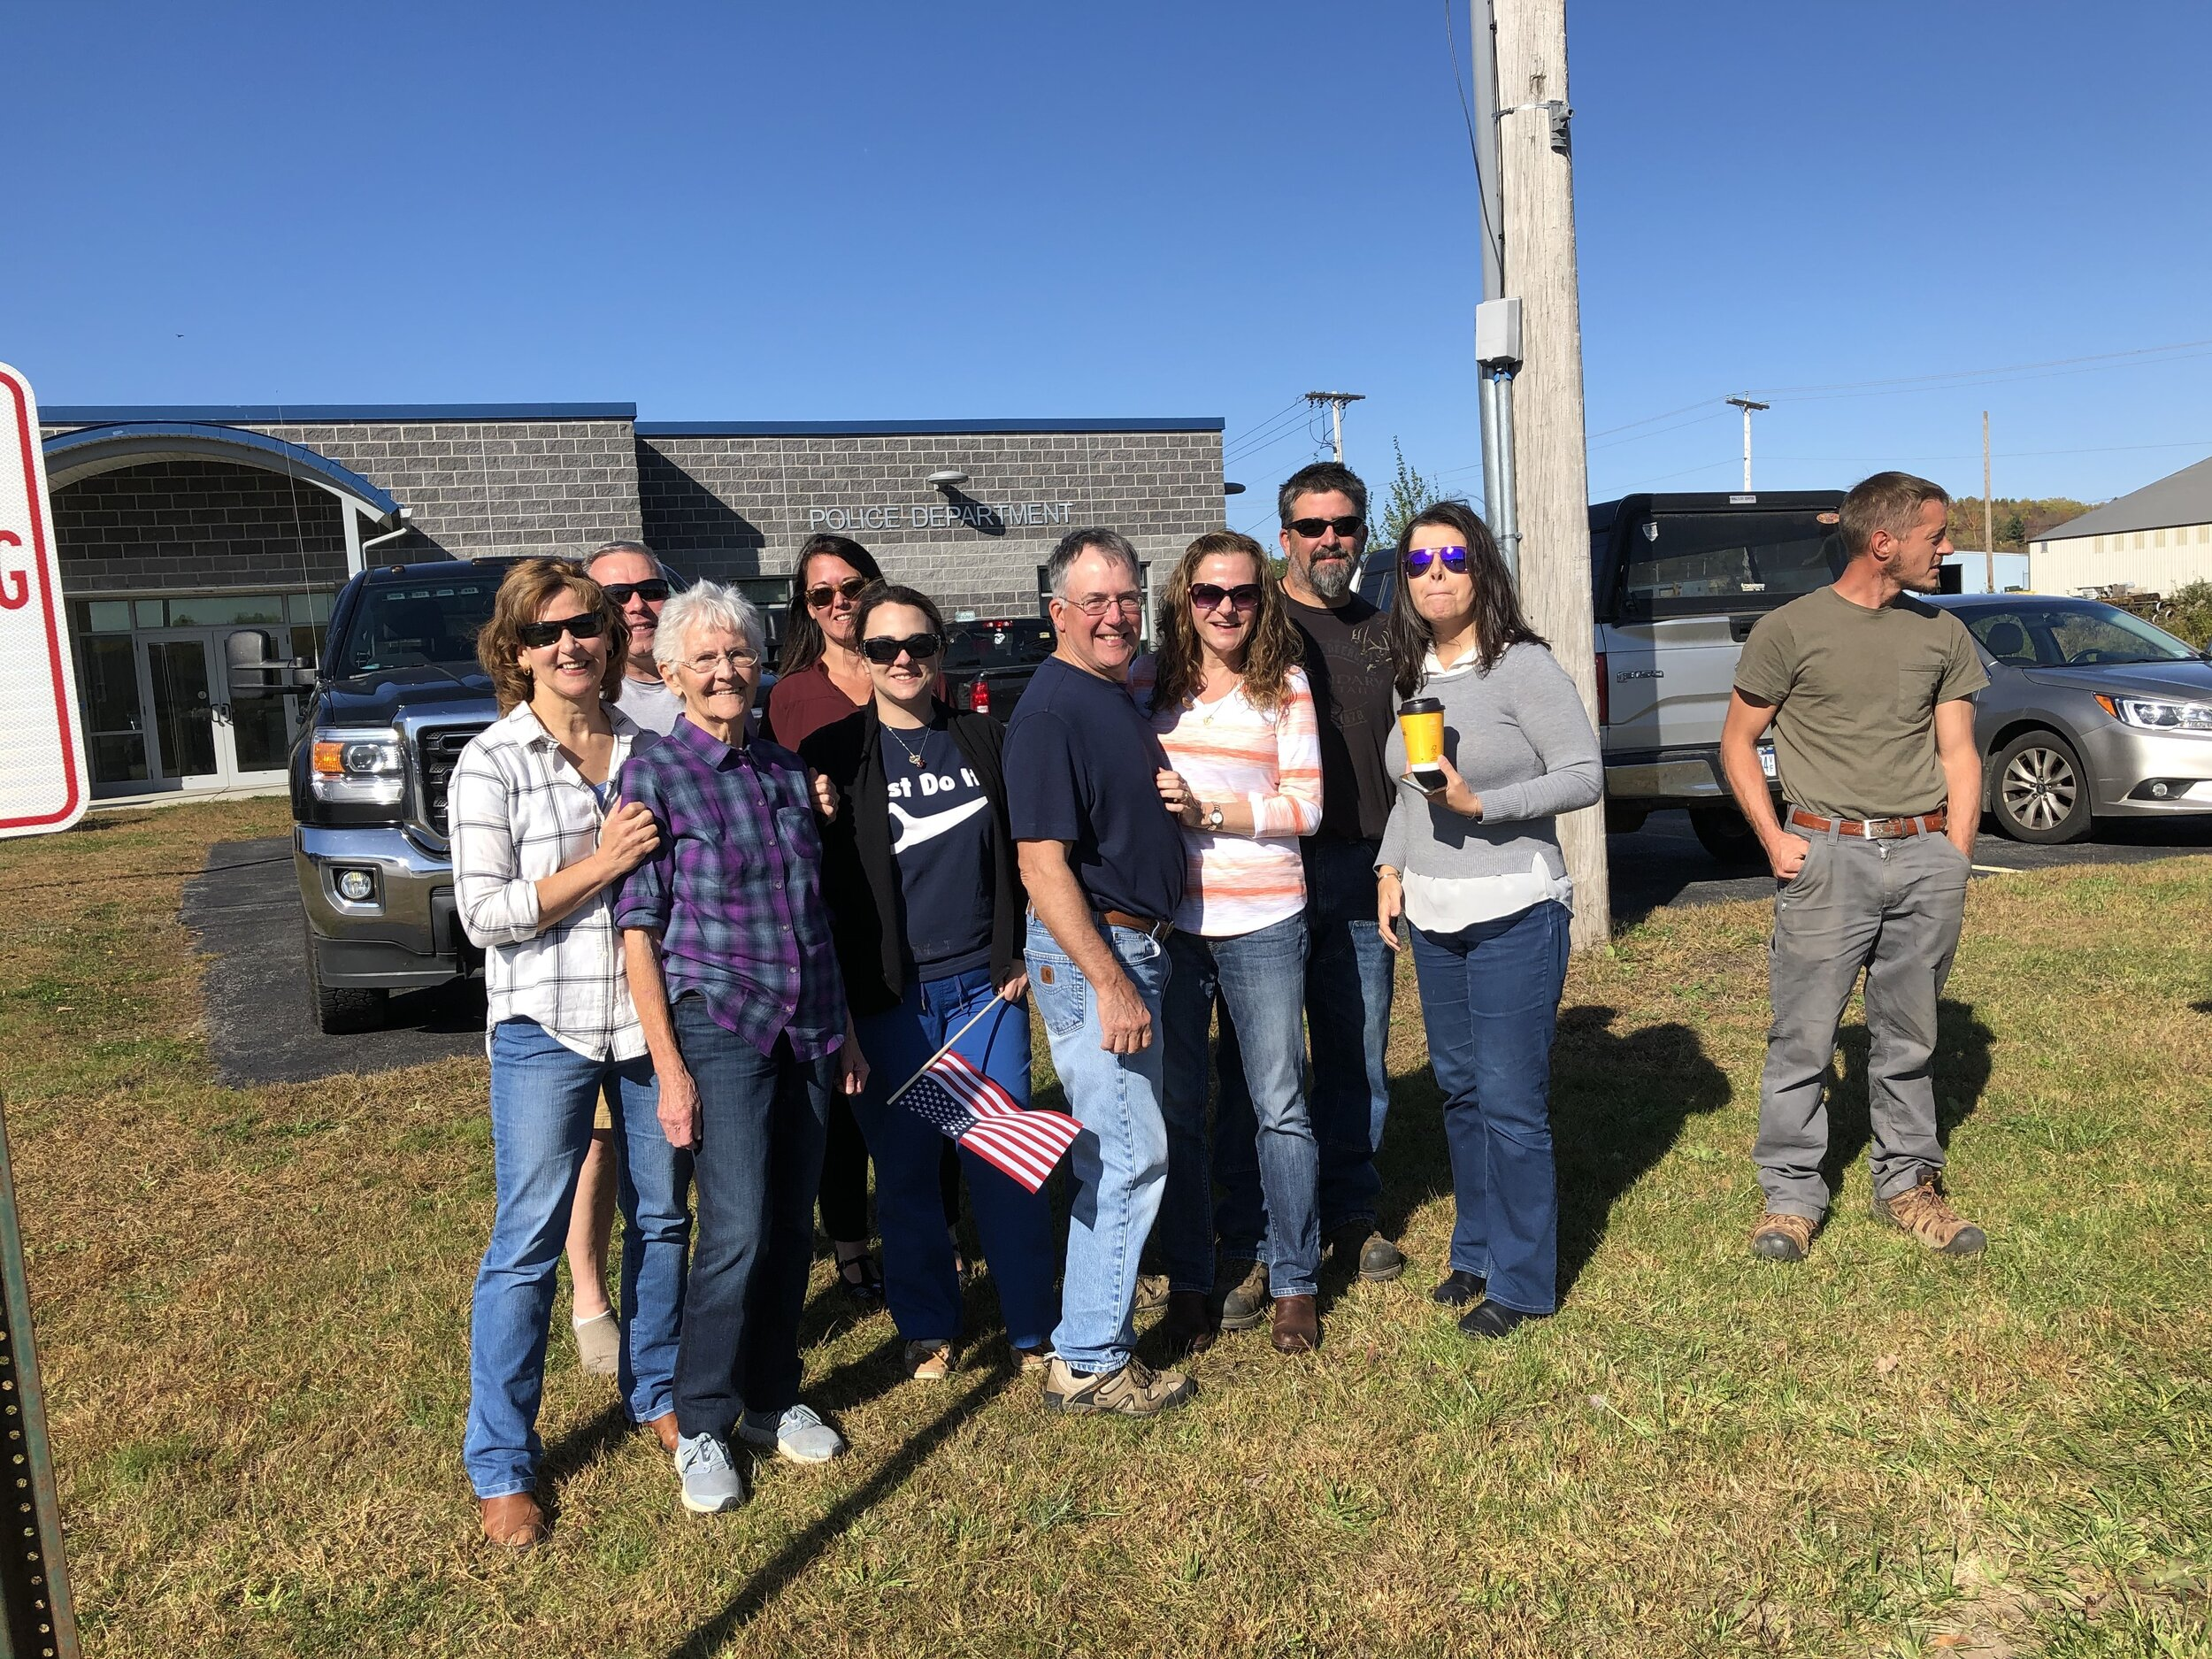 Some members of Tupper Lake's Kentile family wishing their husband, father and grandfather Bucky a safe trip to Washington.